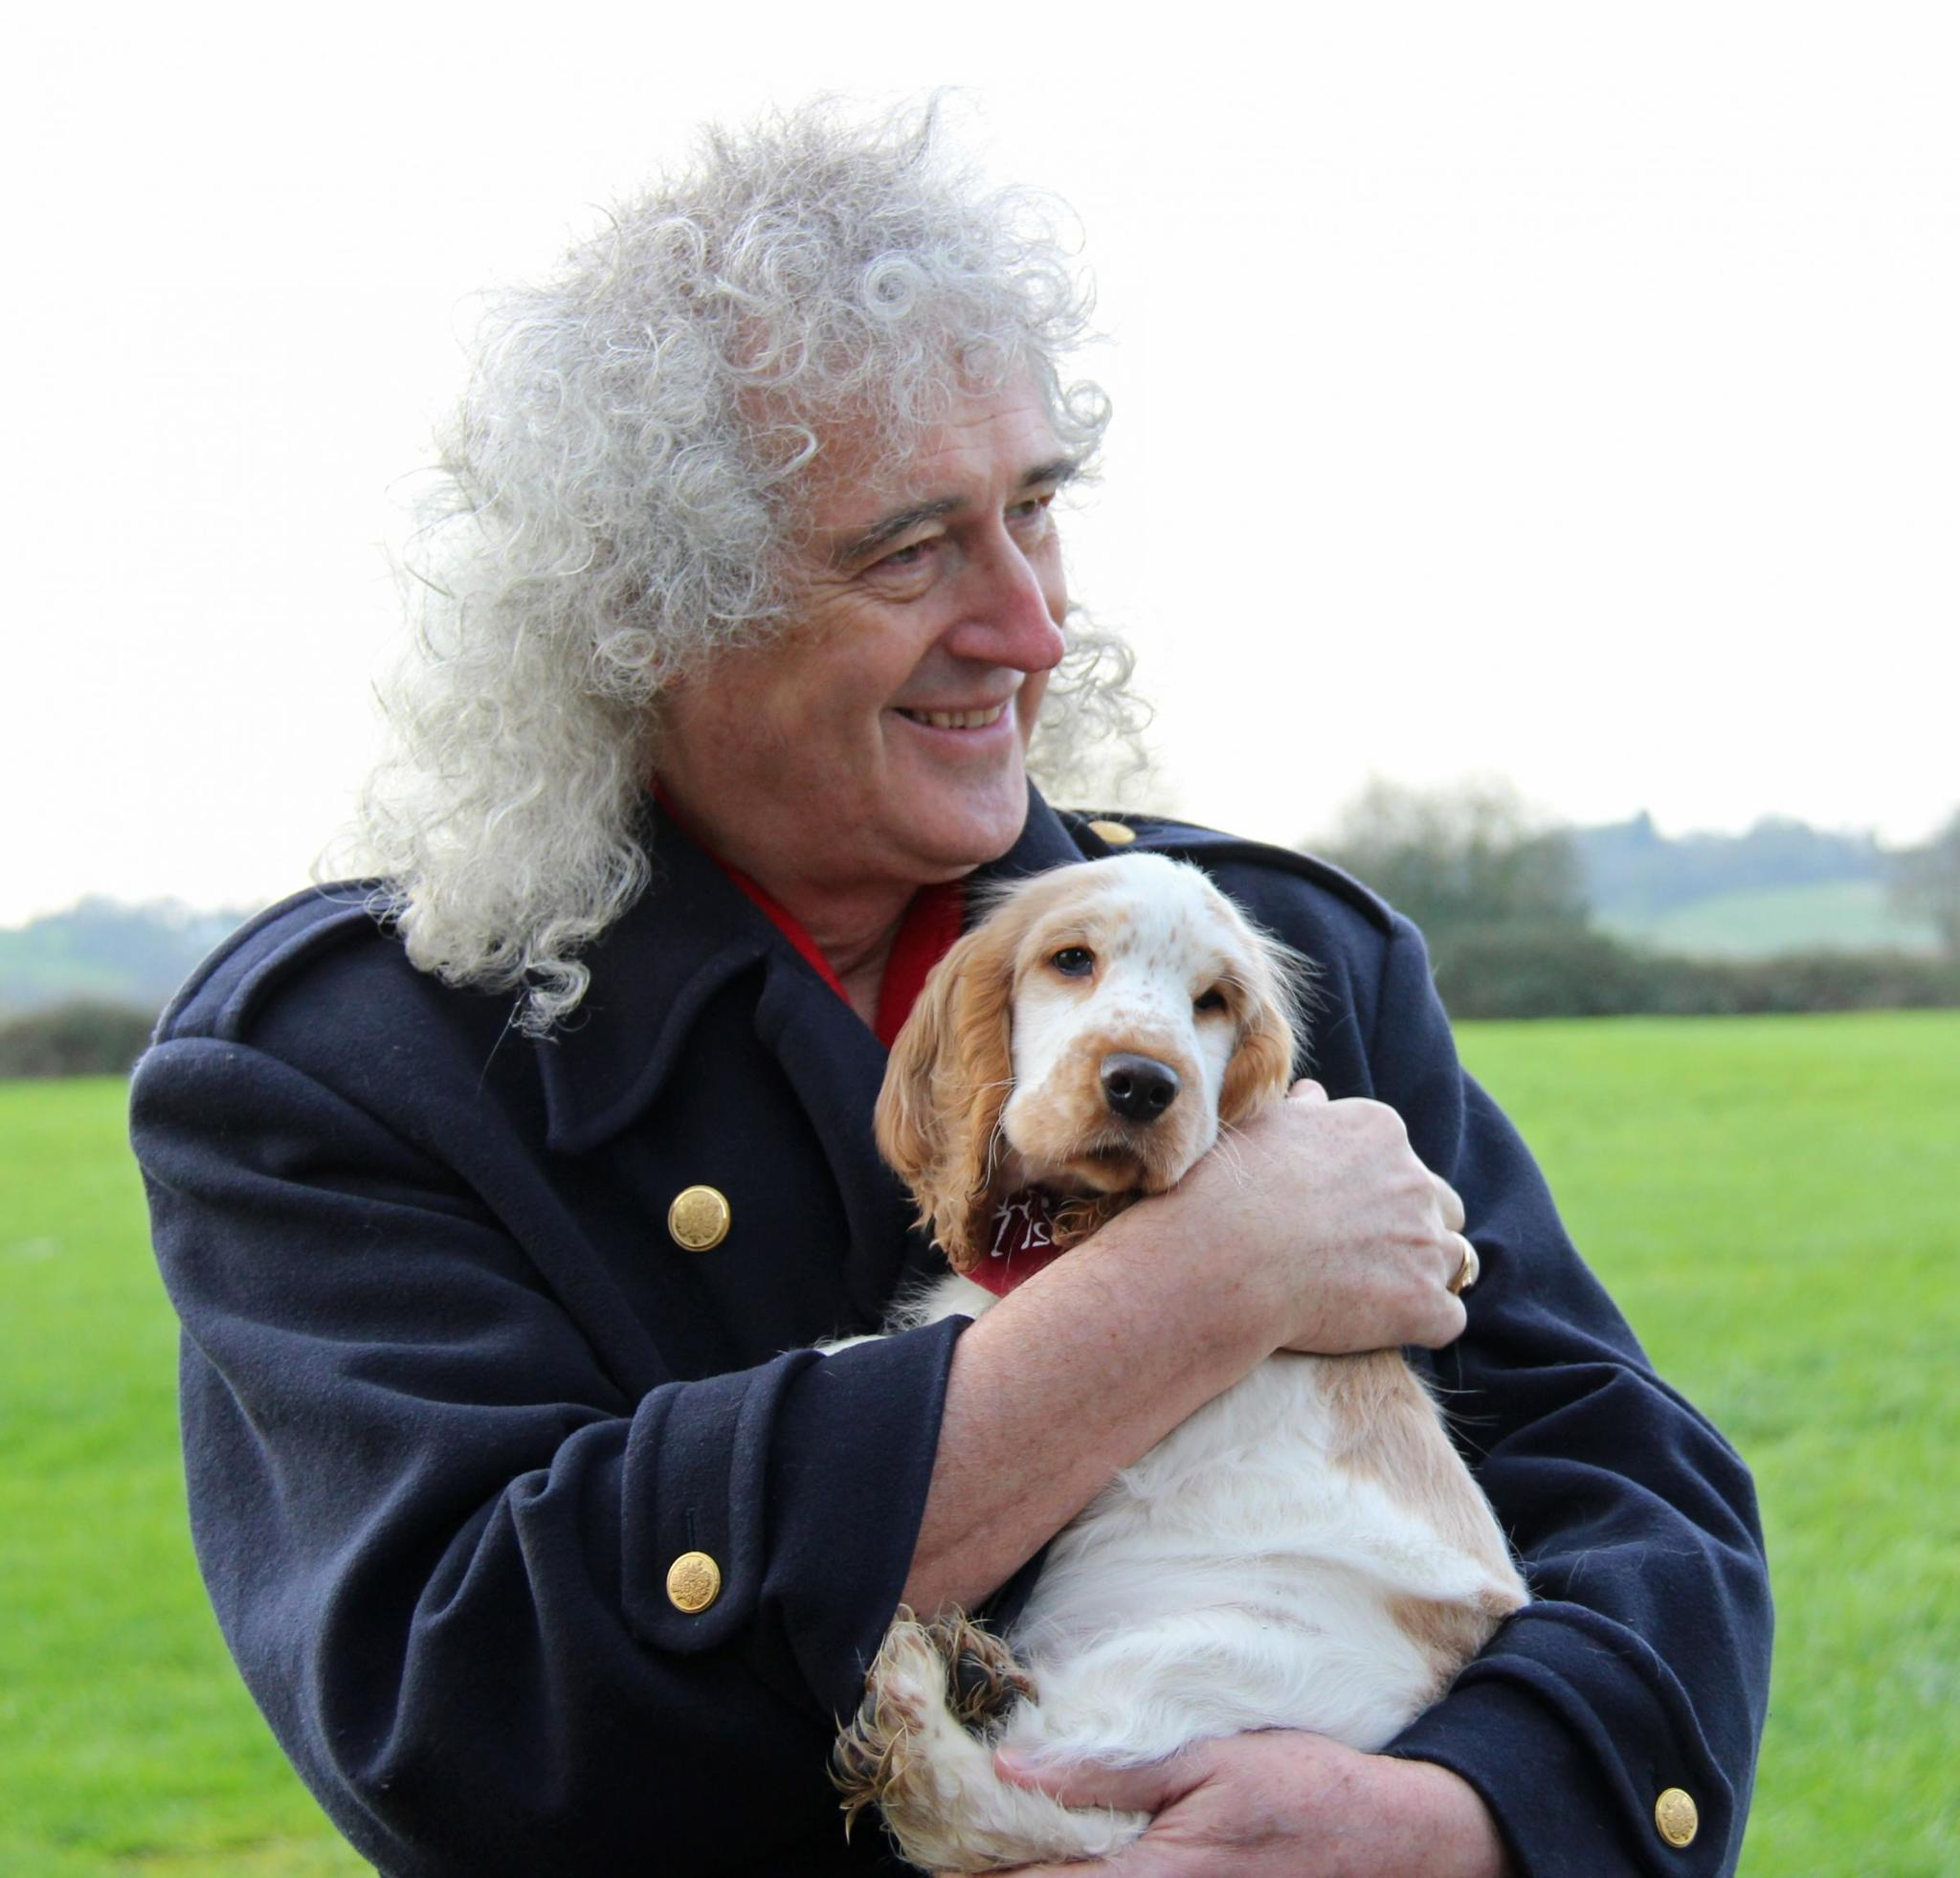 Brian May and Ralph, the 10-week-old Cocker Spaniel puppy